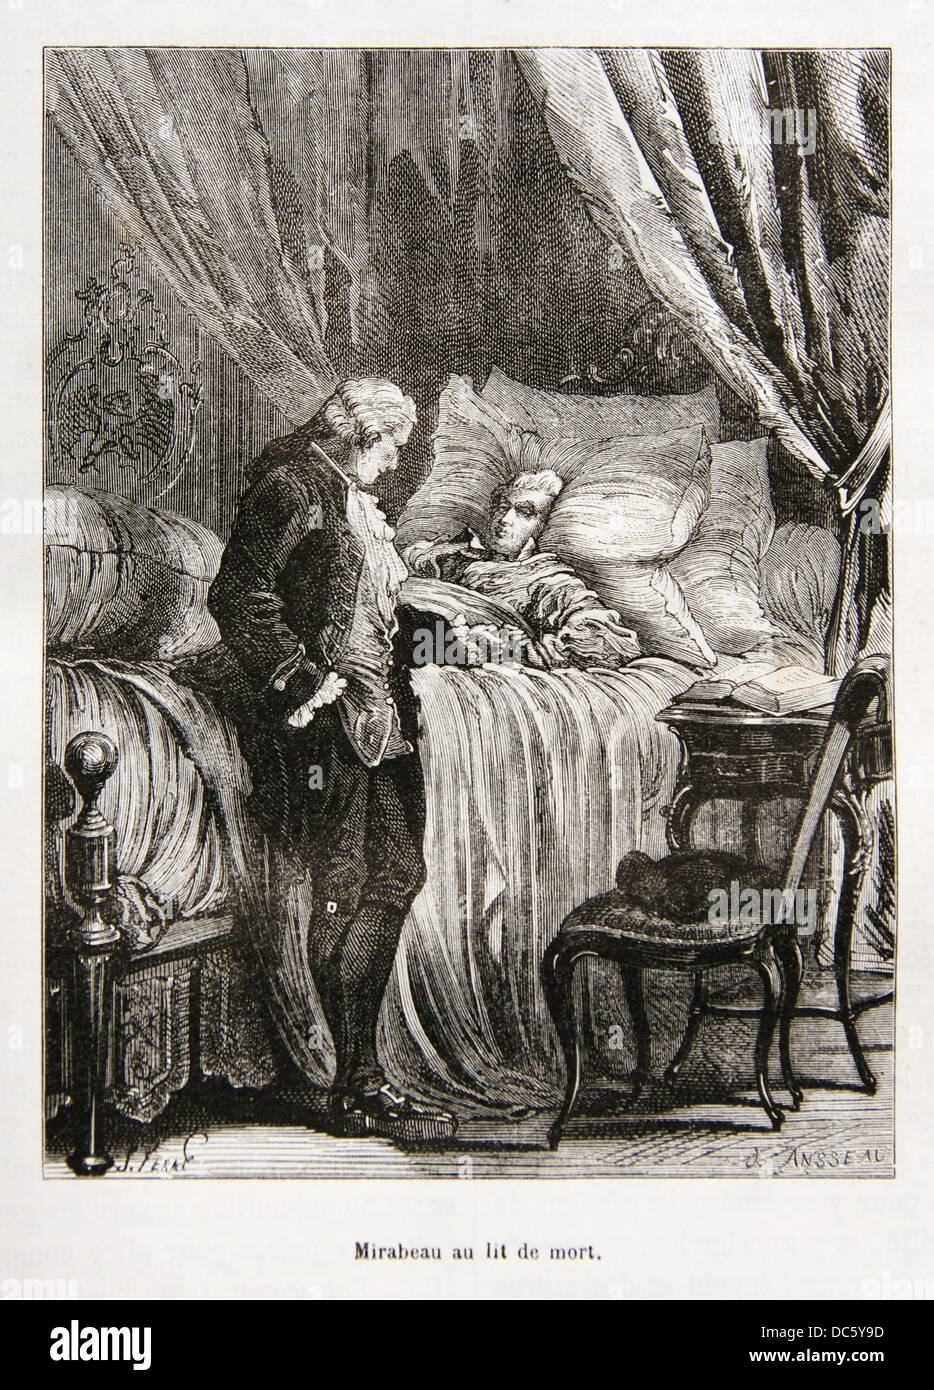 mirabeau on his death bed 18th century france stock. Black Bedroom Furniture Sets. Home Design Ideas